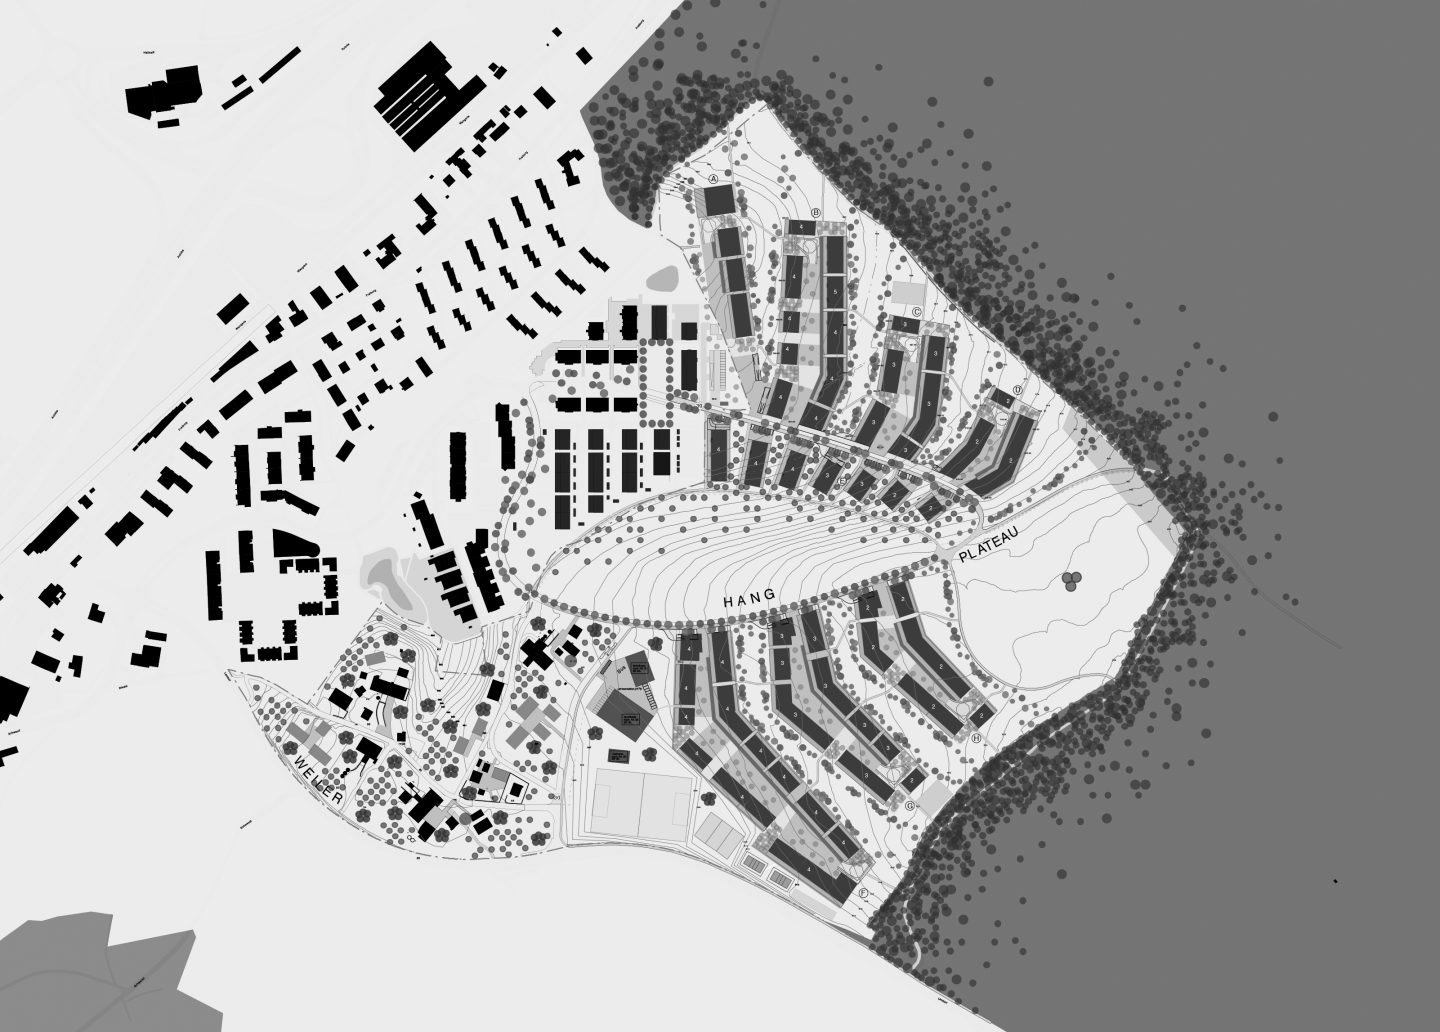 Ried Master Plan, Niederwangen. Hildebrand Studios AG, Architecture and Urban Design in Zurich, Switzerland